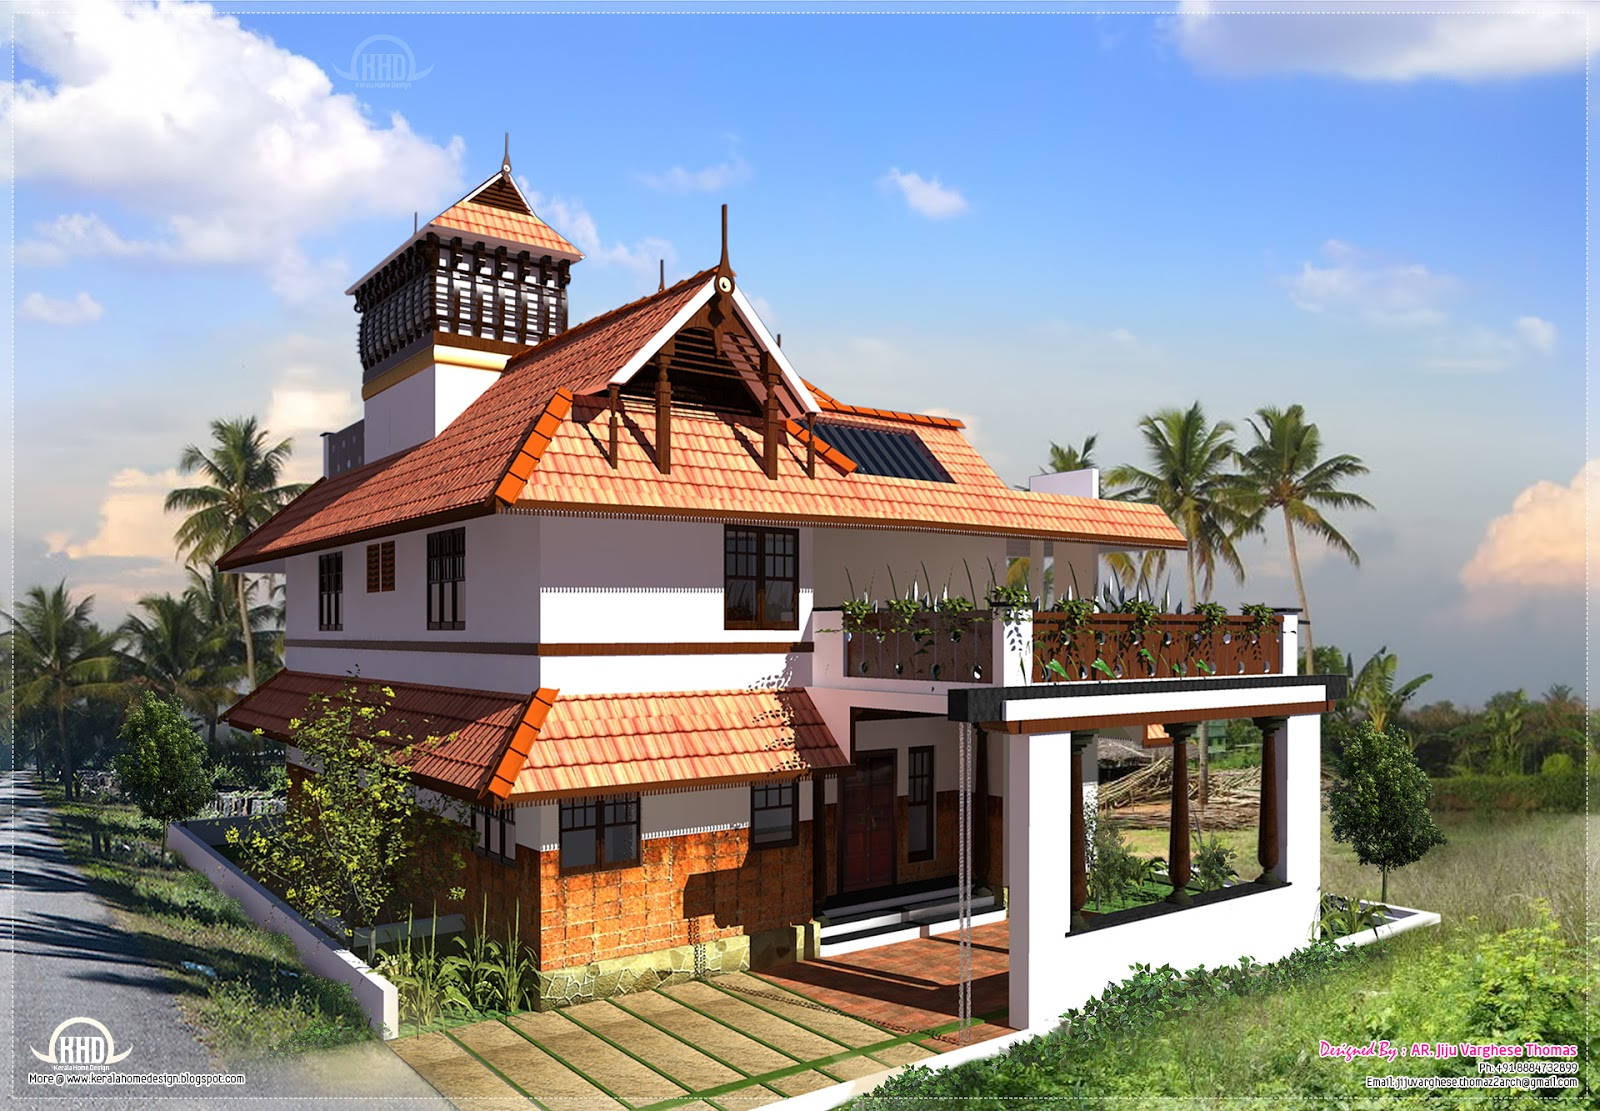 Amazing Kerala Traditional Home In 2000 Square Feet - Kerala Home Design And pertaining to Kerala Traditional House Plans With Photos